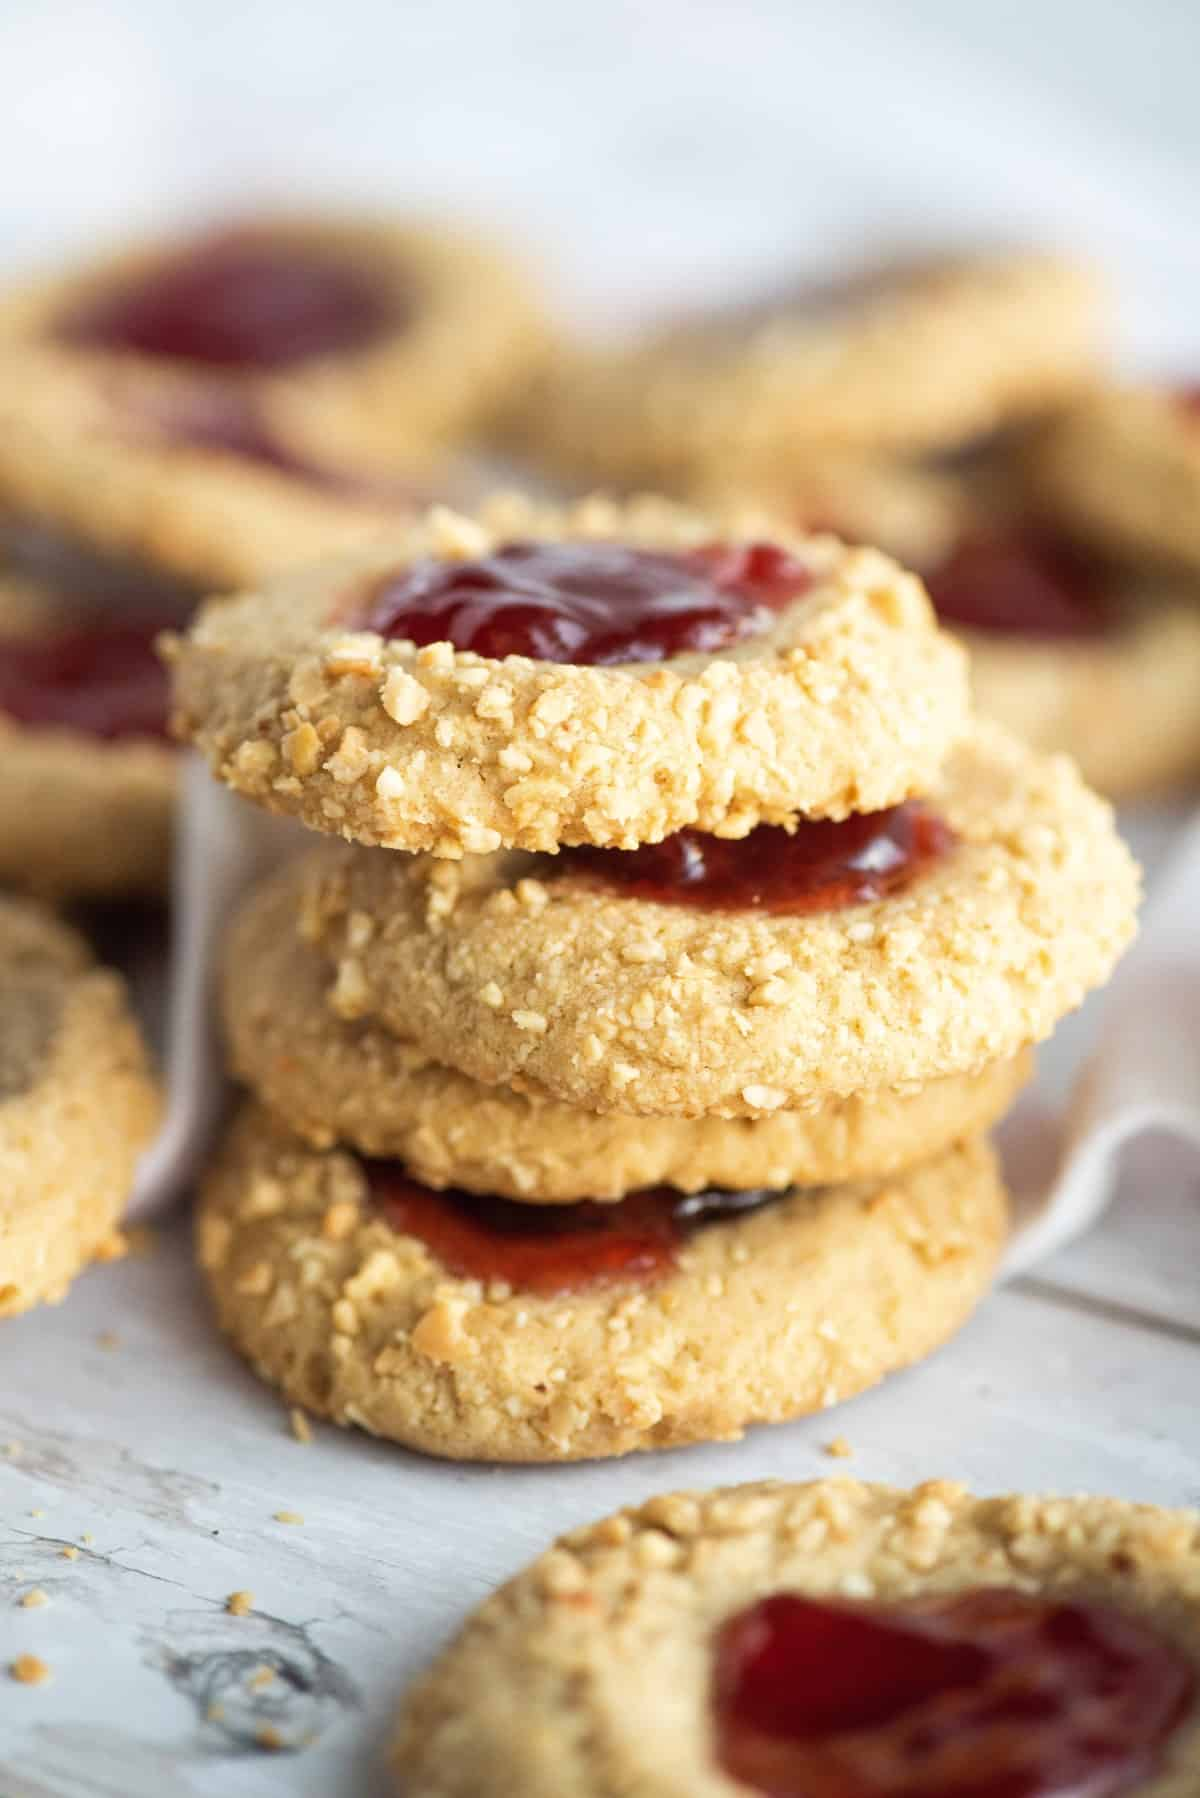 Peanut Butter and Jelly Cookies stacked.